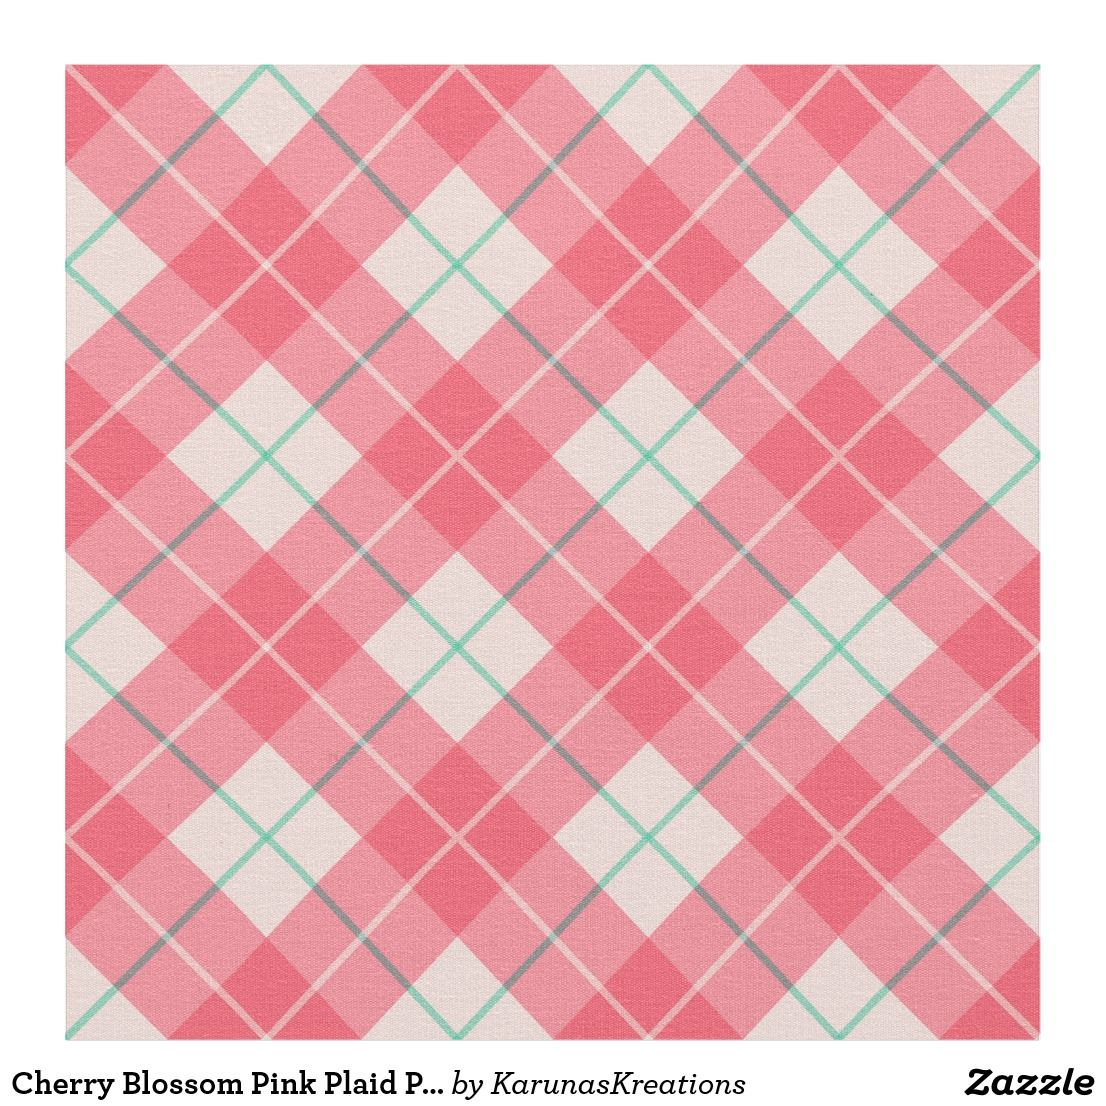 Cherry Blossom Pink Plaid Pattern Fabric (With images